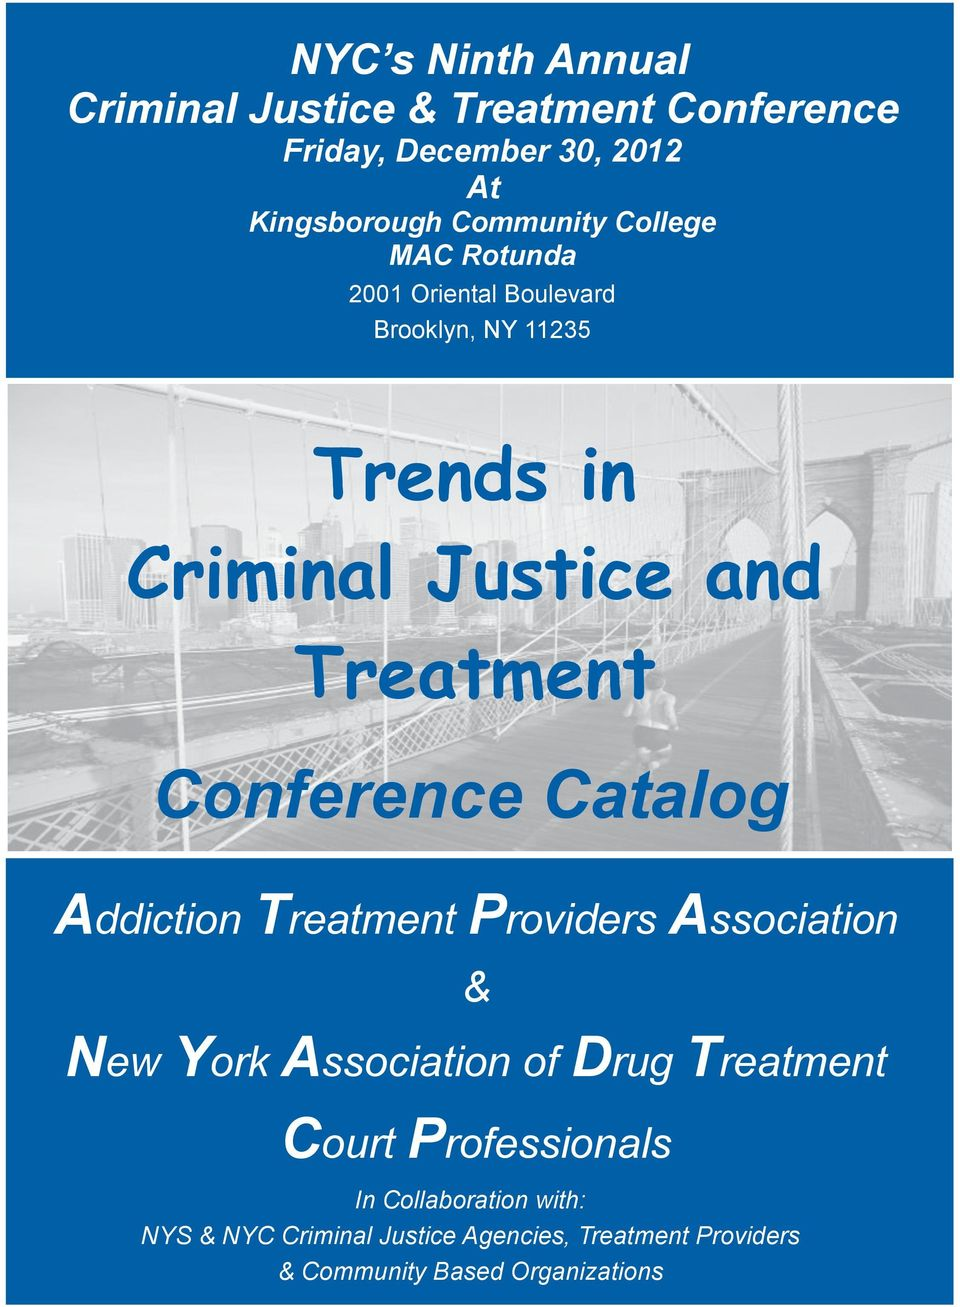 Conference Catalog Addiction Treatment Providers Association & New York Association of Drug Treatment Court